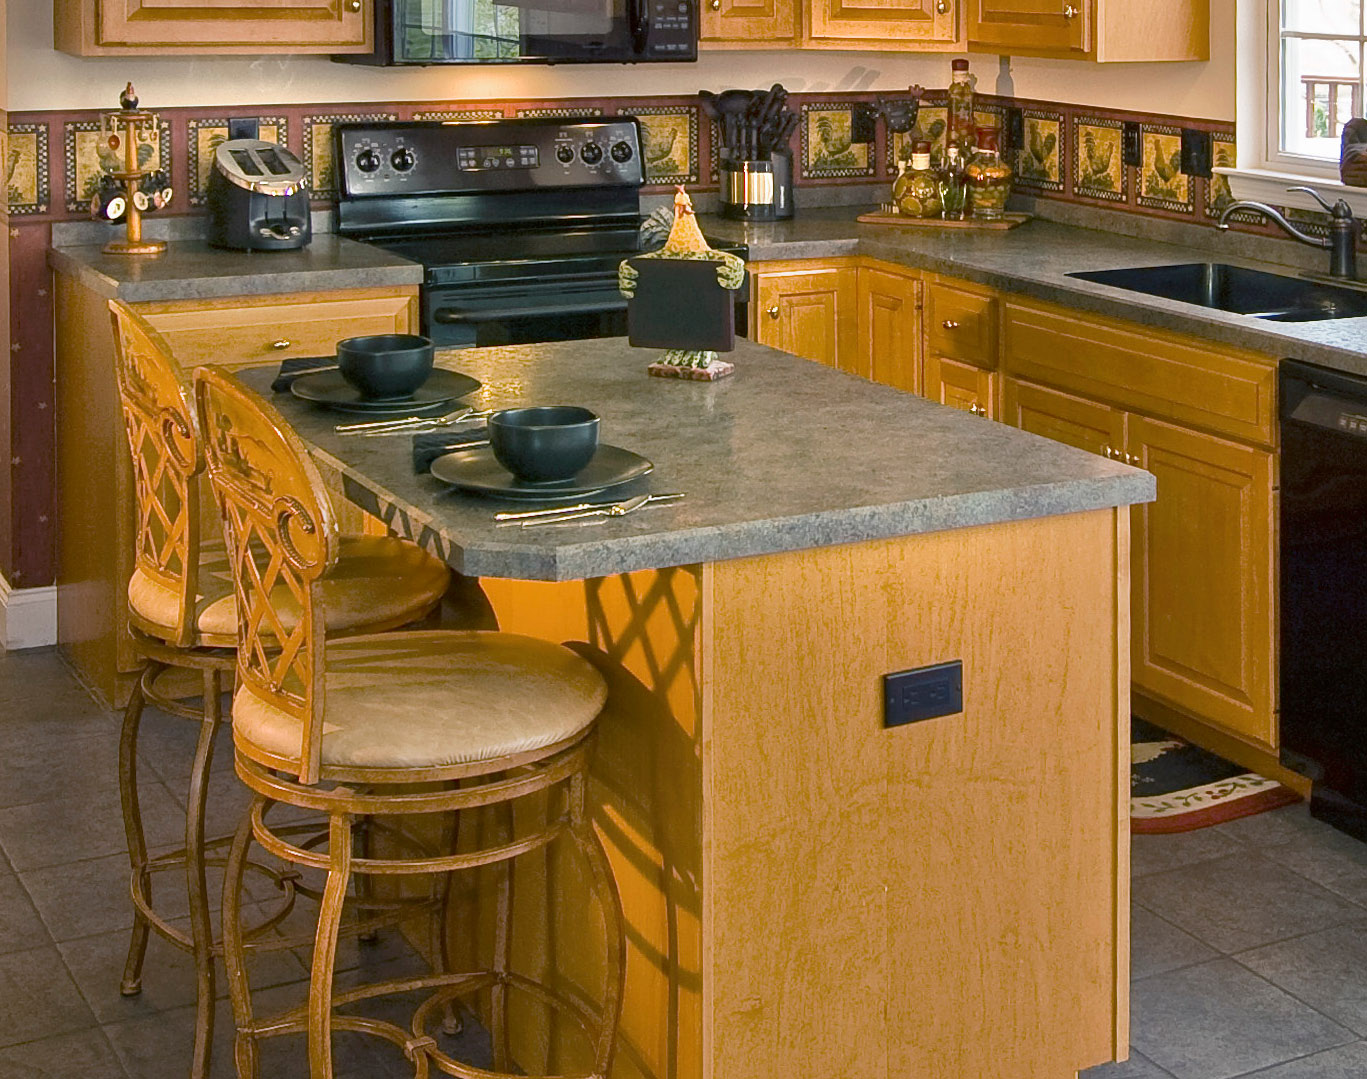 pretty wooden kitchen cabinet with gray wilsonart laminate countertops and sink plus stove for kitchen decor ideas